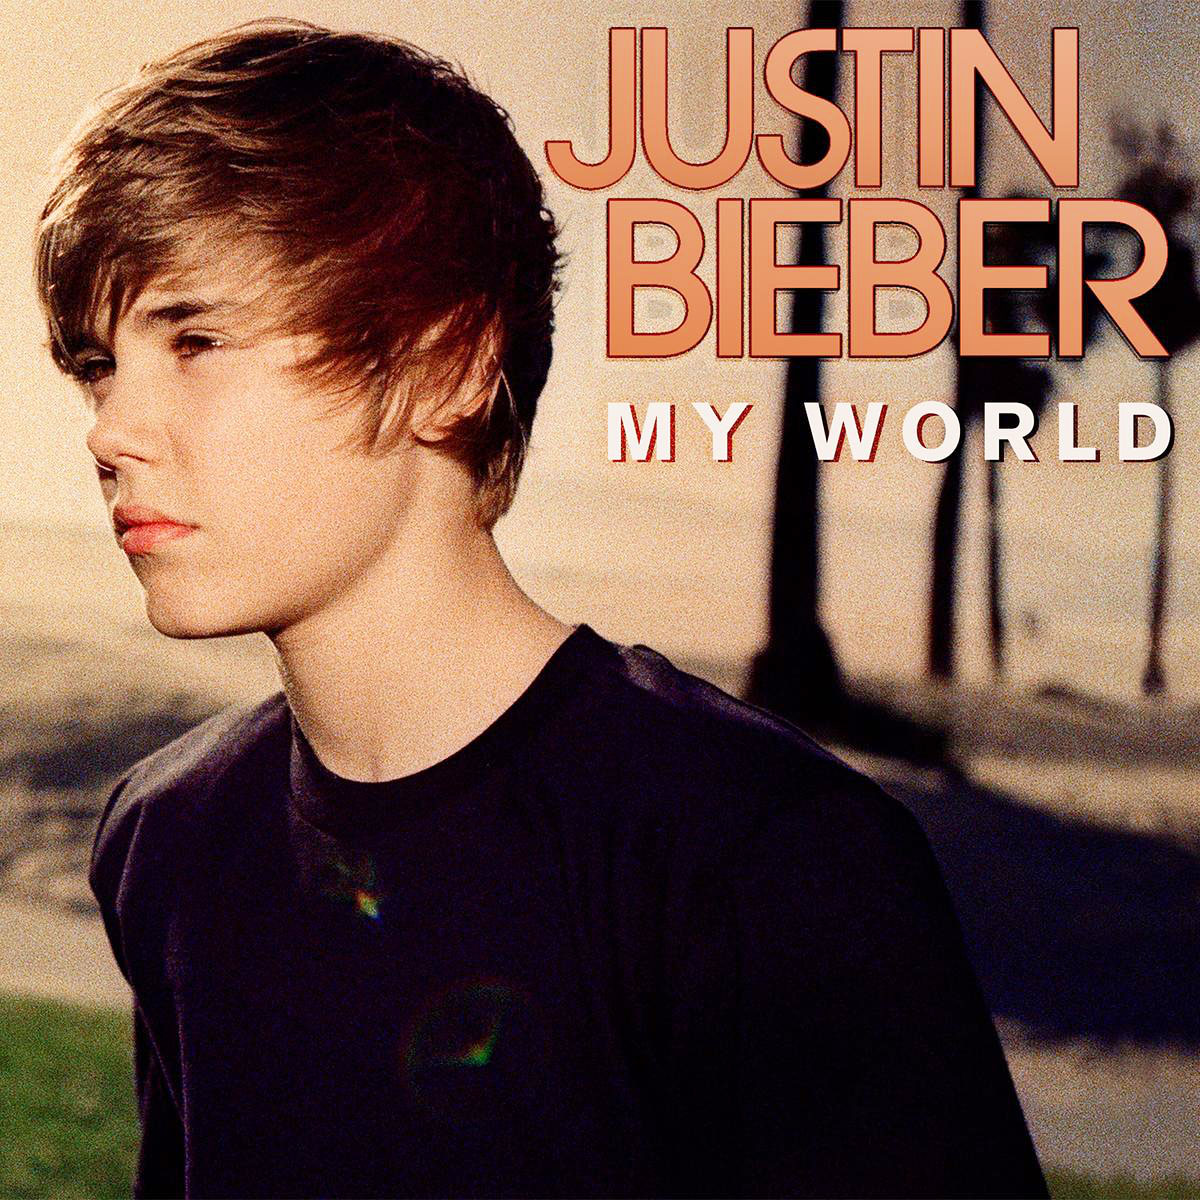 """Justin Bieber Through The Years My World EP - The singer released his first EP, My World , which included a collaboration with mentor Usher titled """"First Dance."""" It hit No. 6 on the Billboard 200 chart, making it the strongest debut for a new artist that year."""